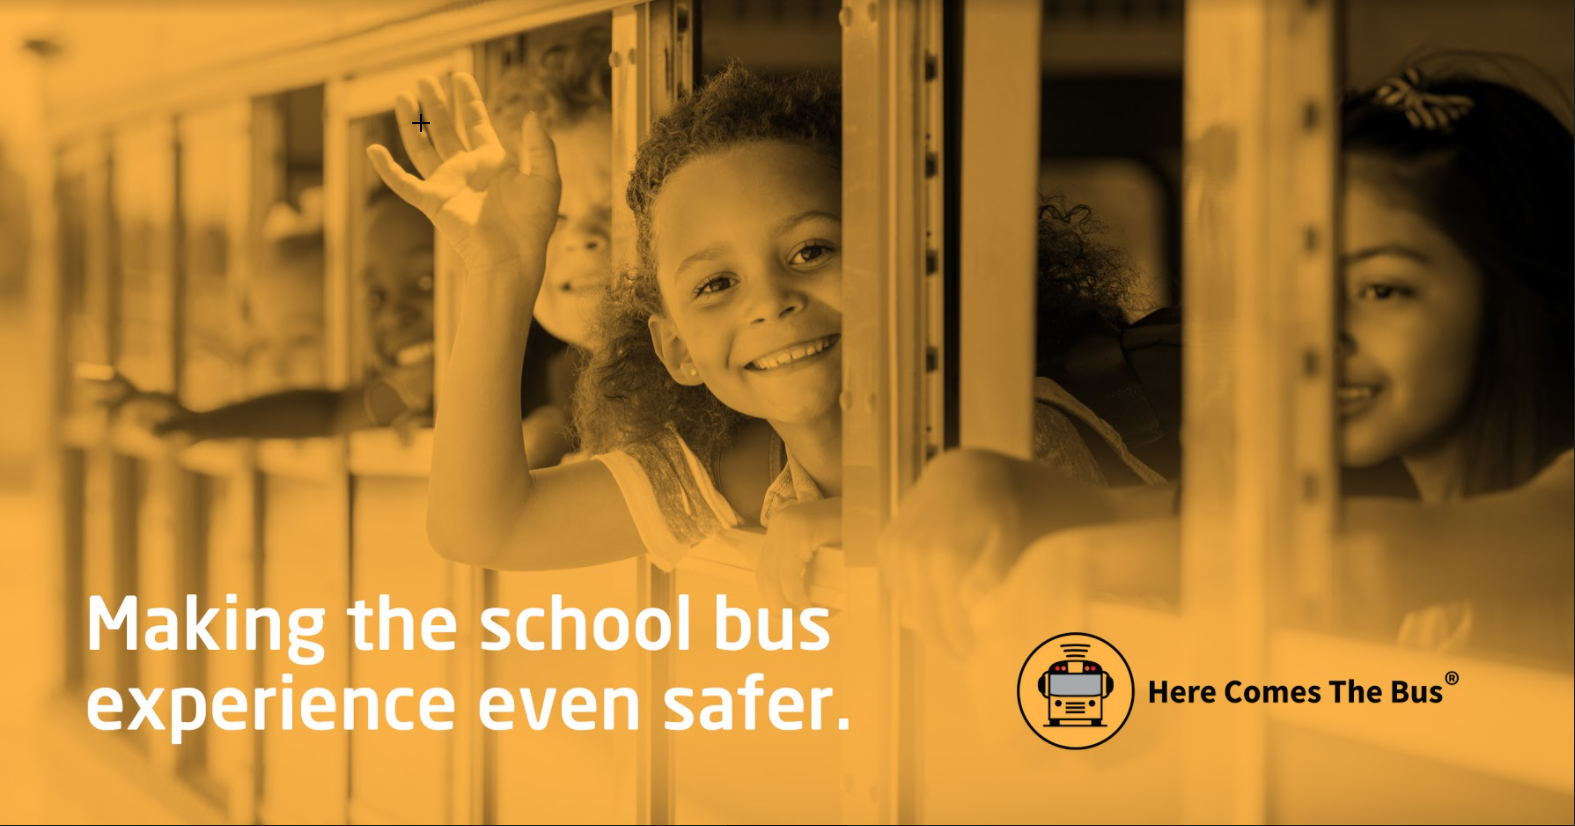 Making the school bus experience even safer